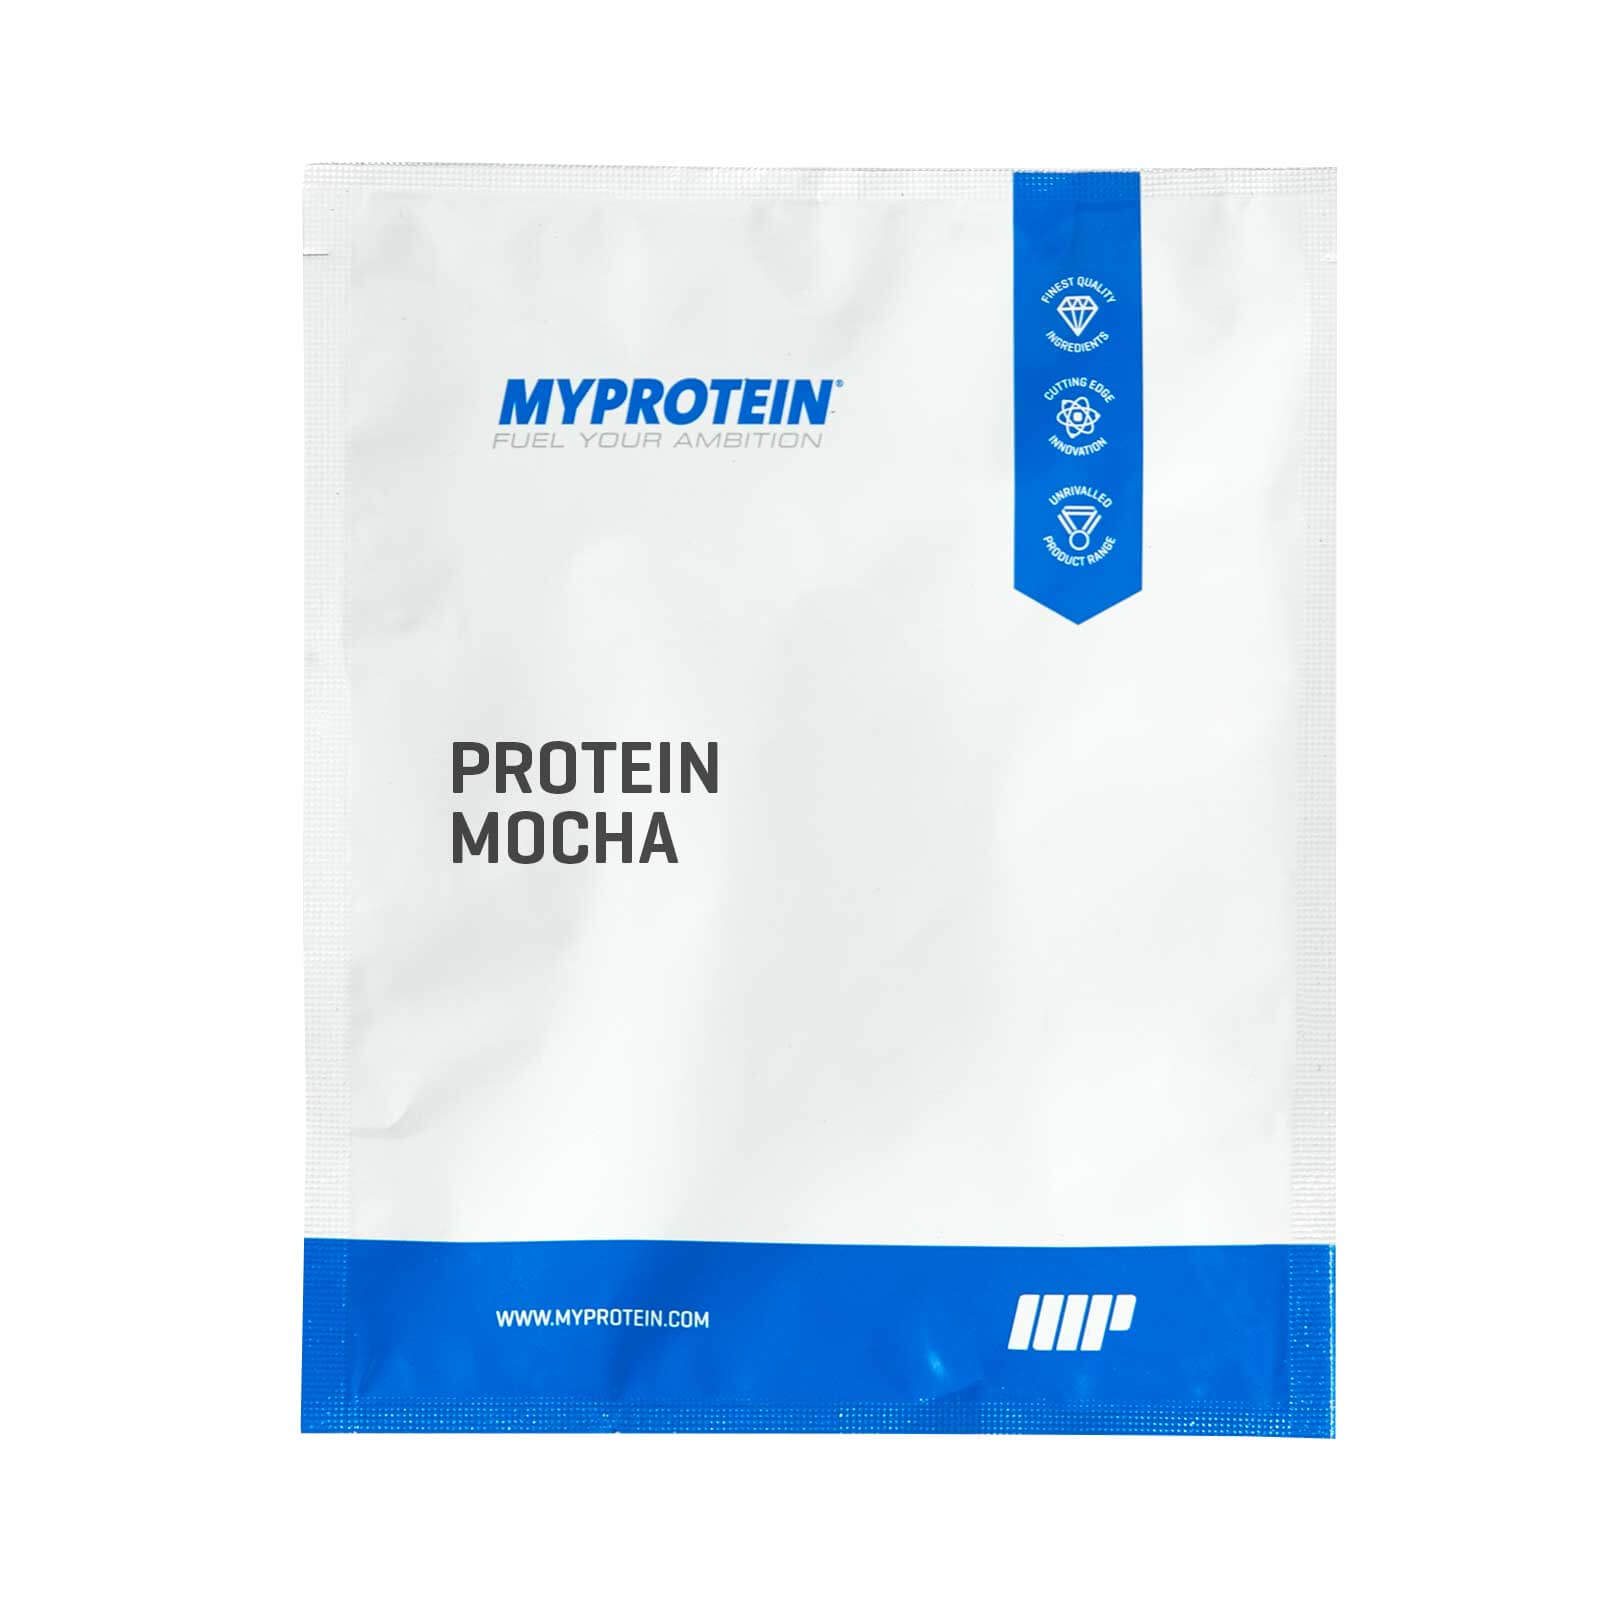 Protein Hot Mocha (sample), Mocha, 50g